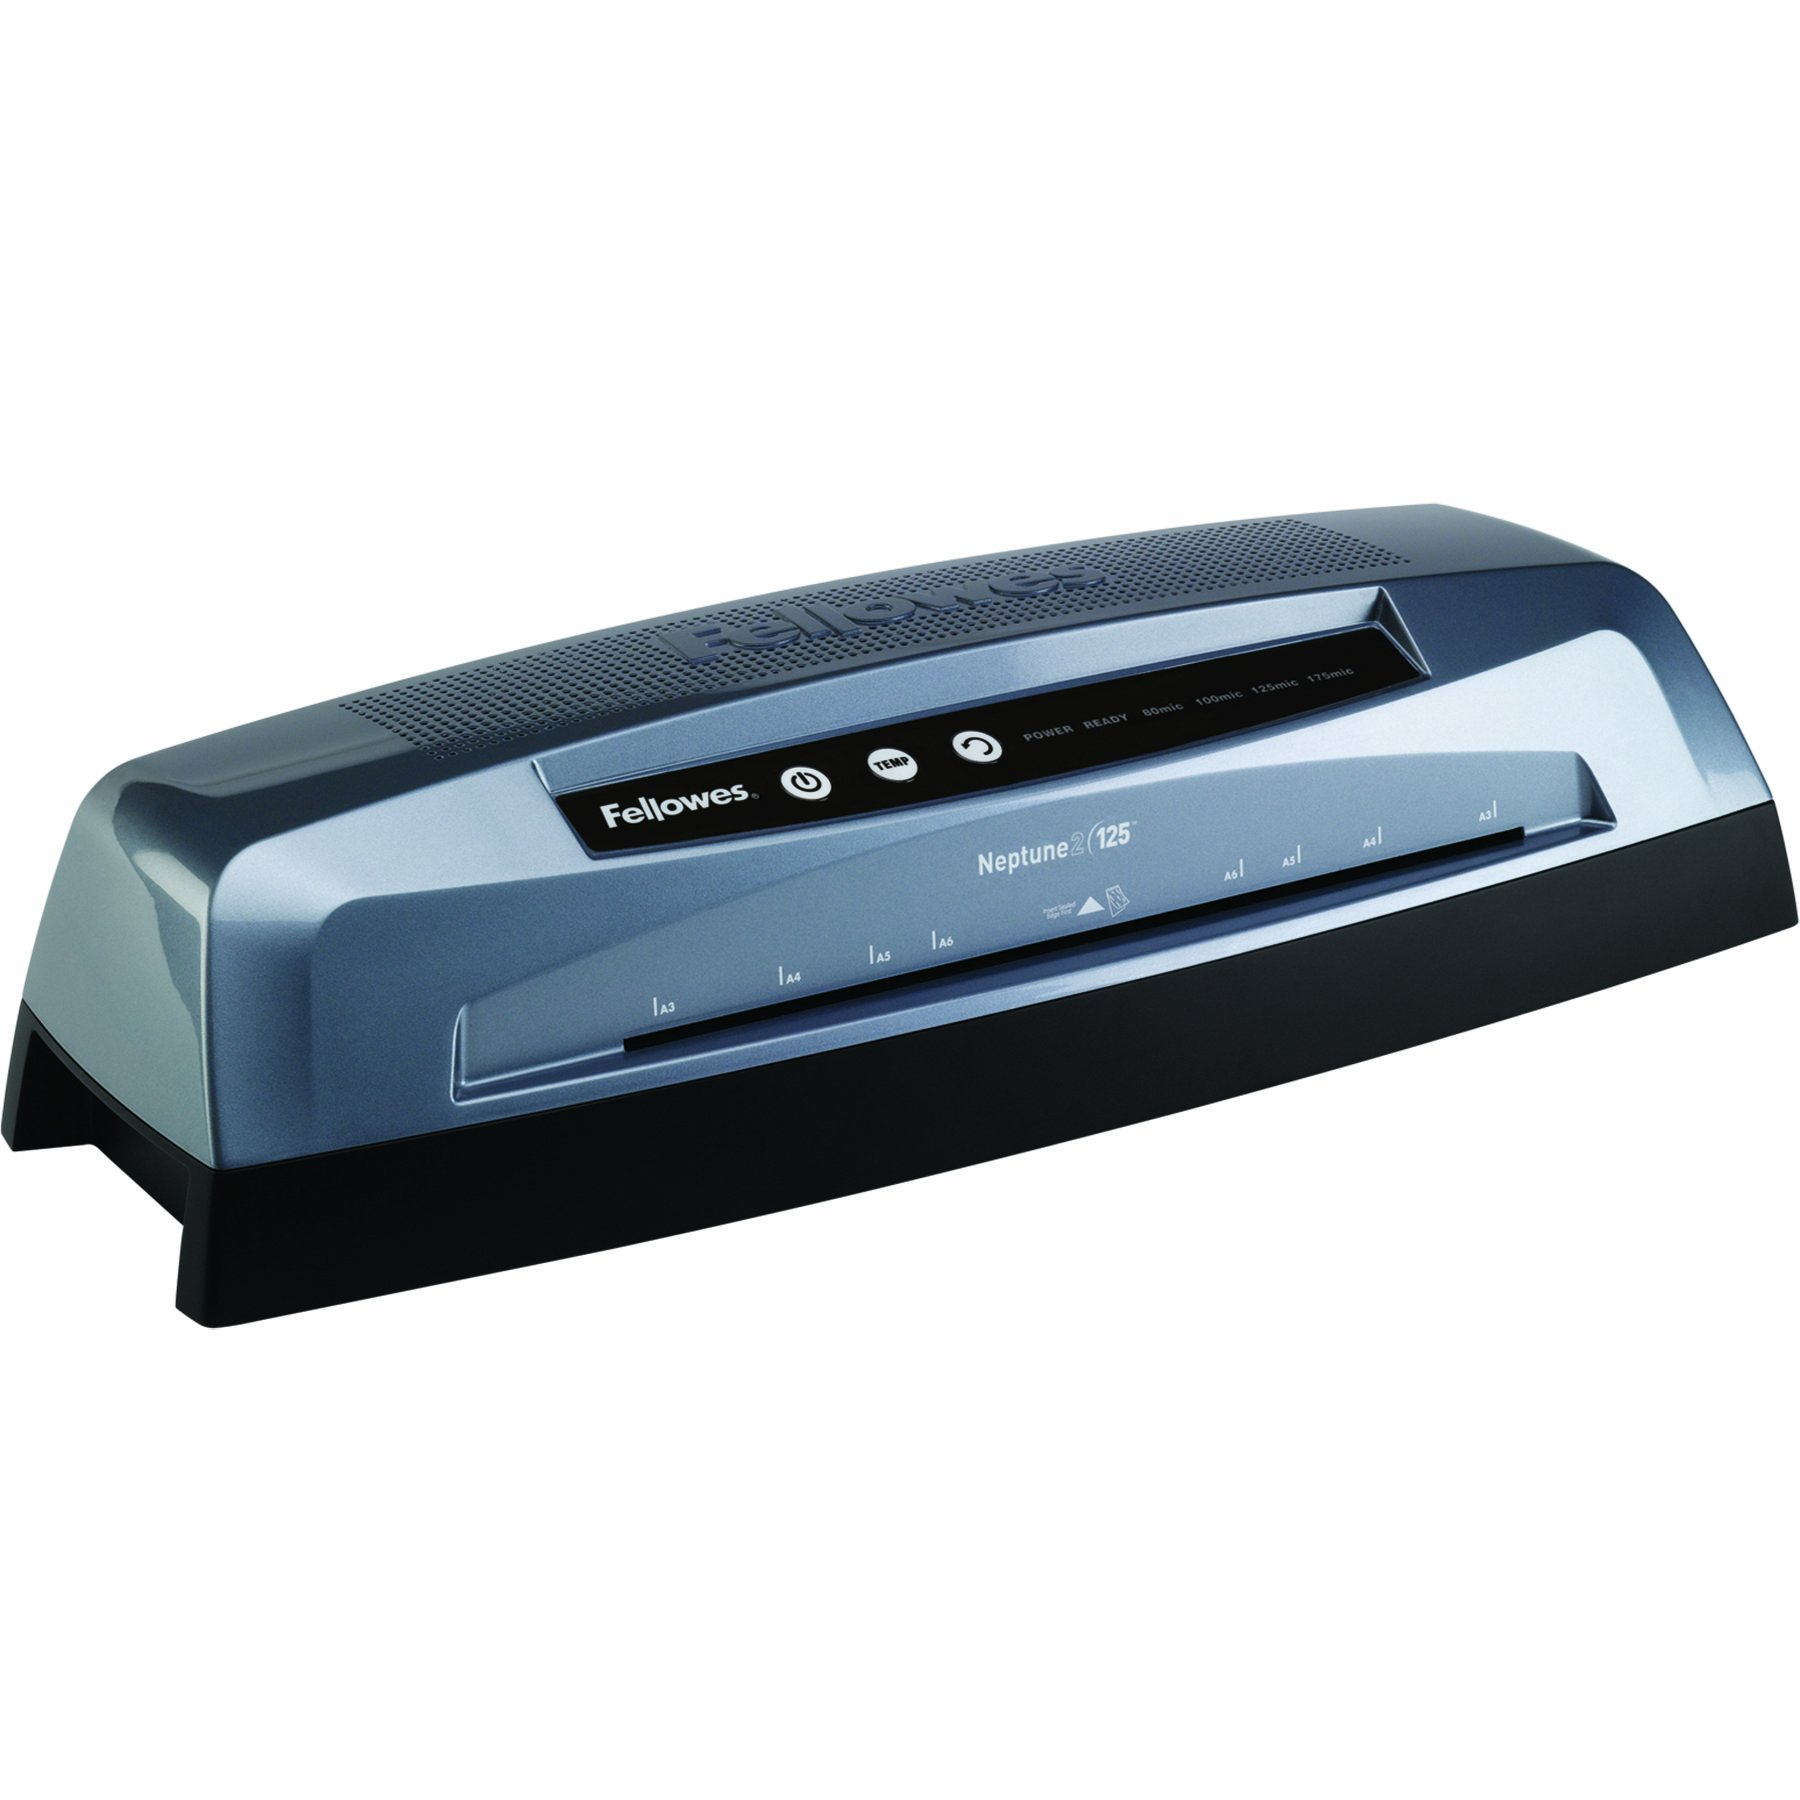 Fellowes Neptune 12.5-Inch Laminator (NL-125) by Fellowes (Image #3)